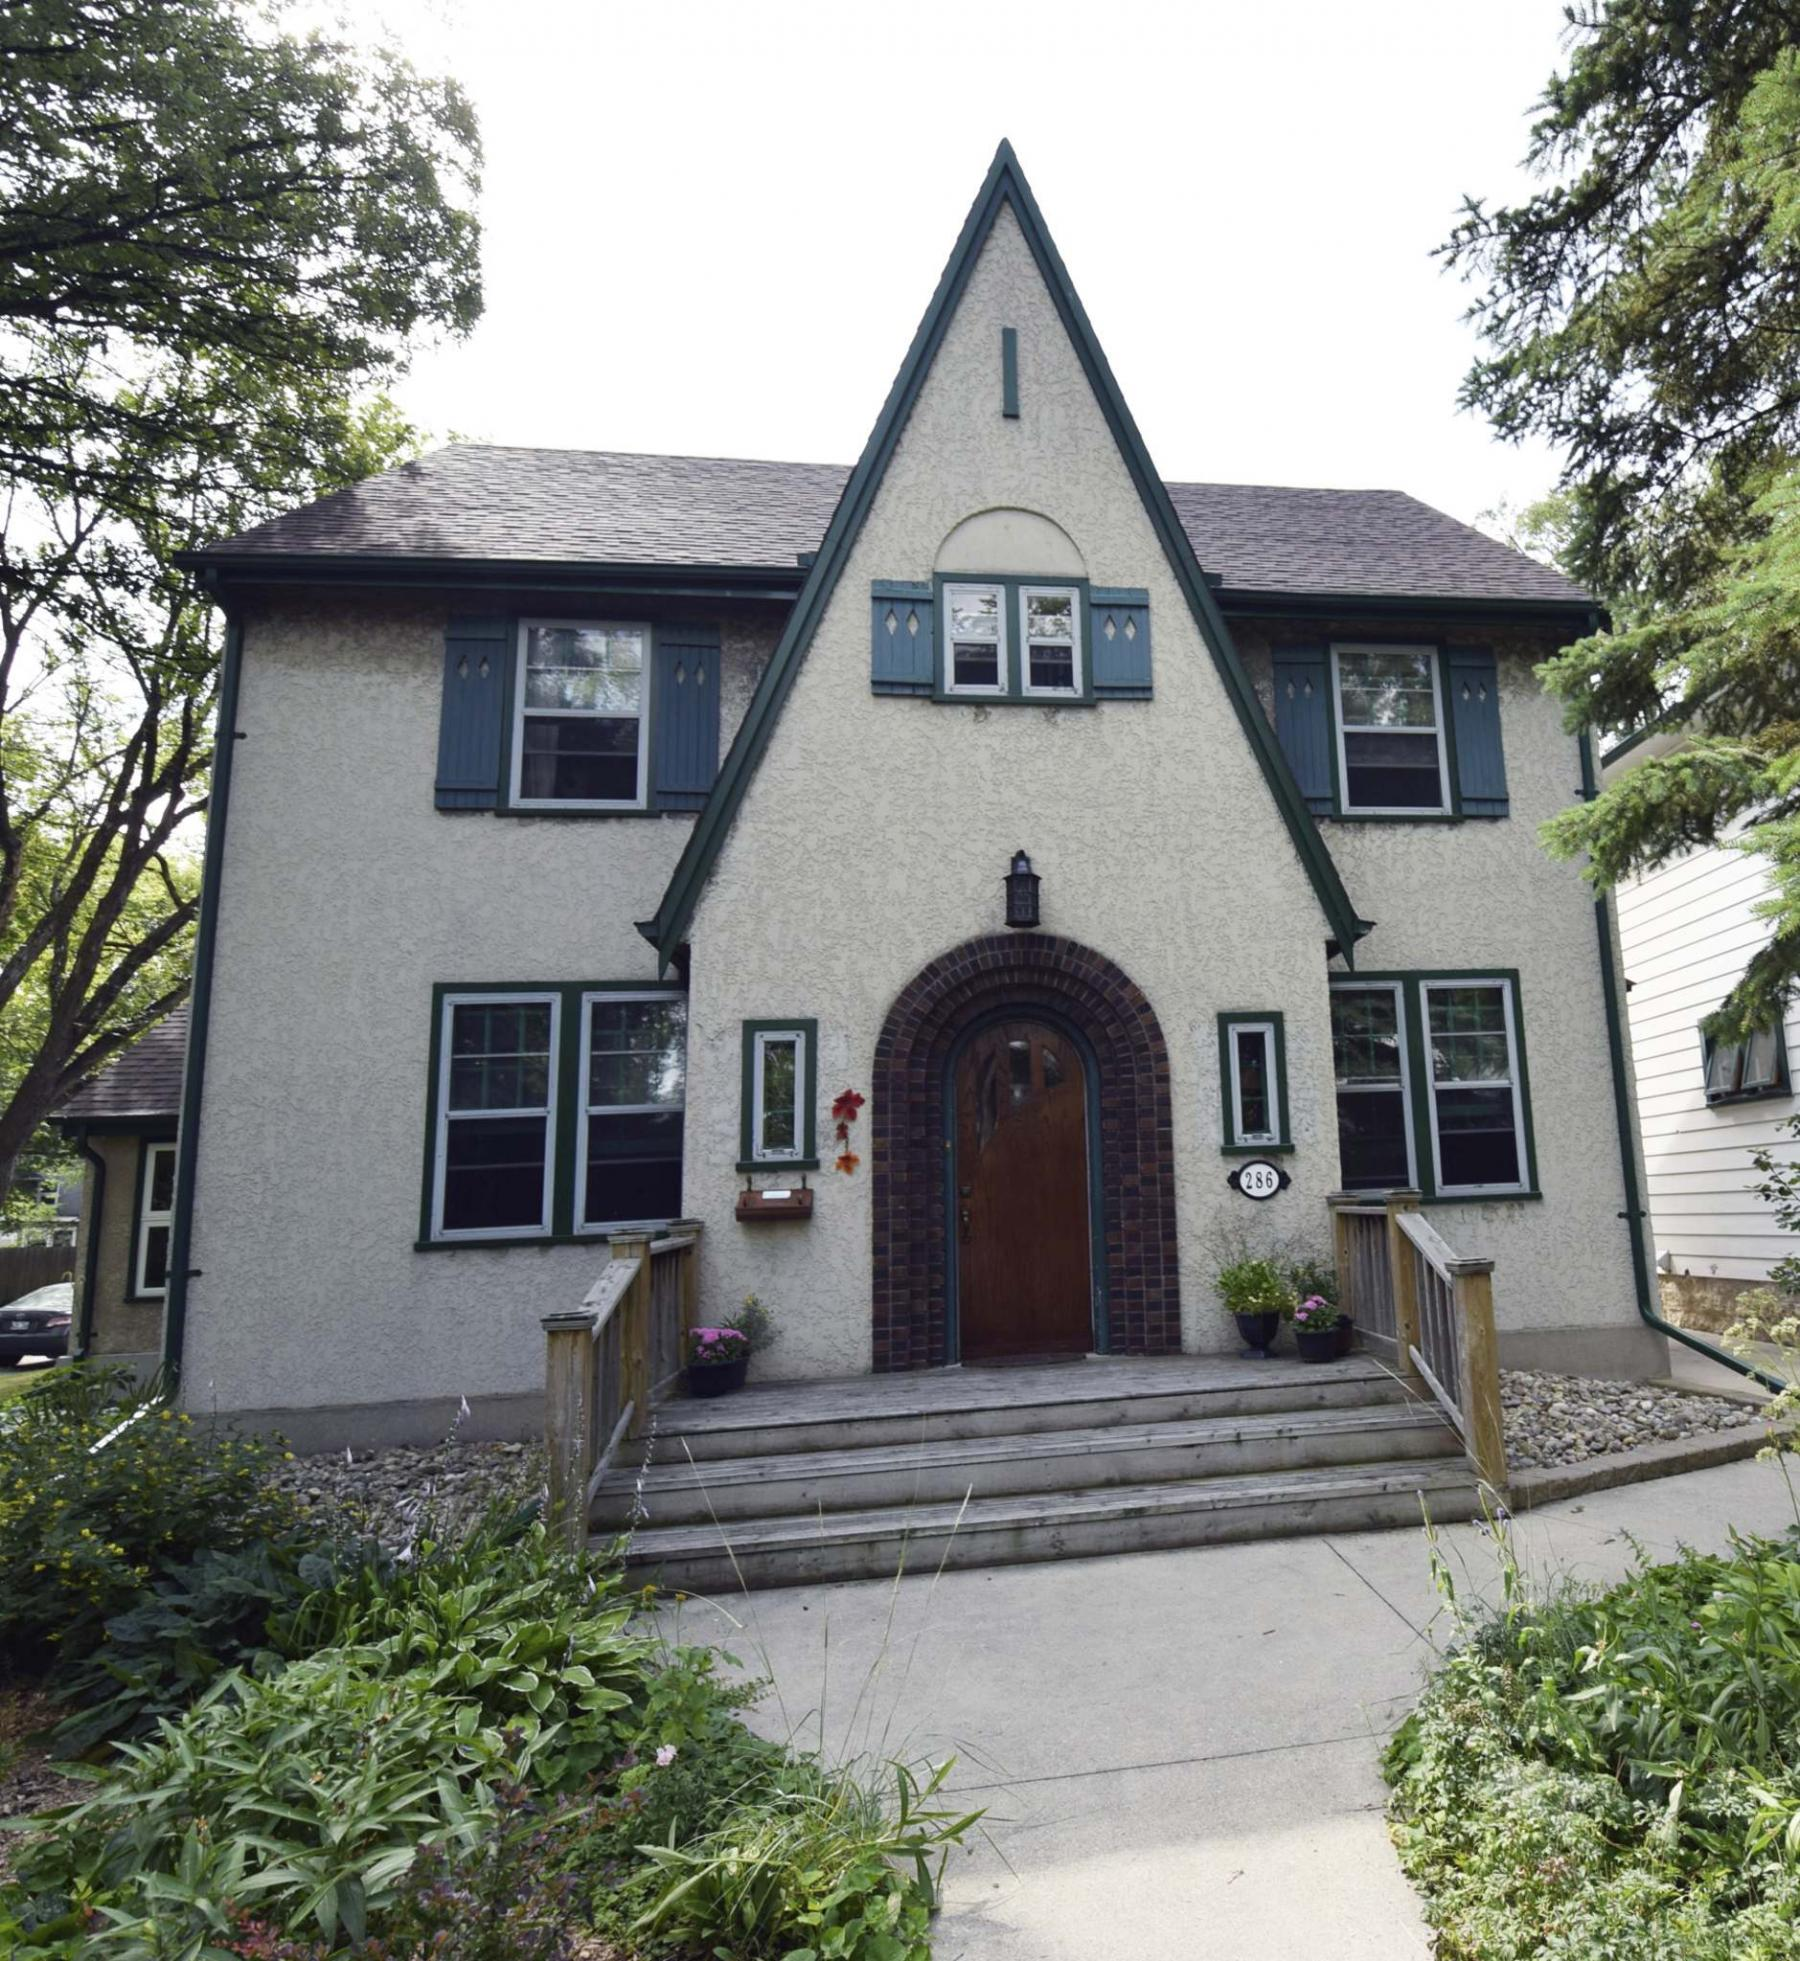 <p>Photos by Todd Lewys / Winnipeg Free Press</p><p>Situated on an oversized corner lot, this classic two-storey home is surrounded by lush gardens and mature trees.</p></p>